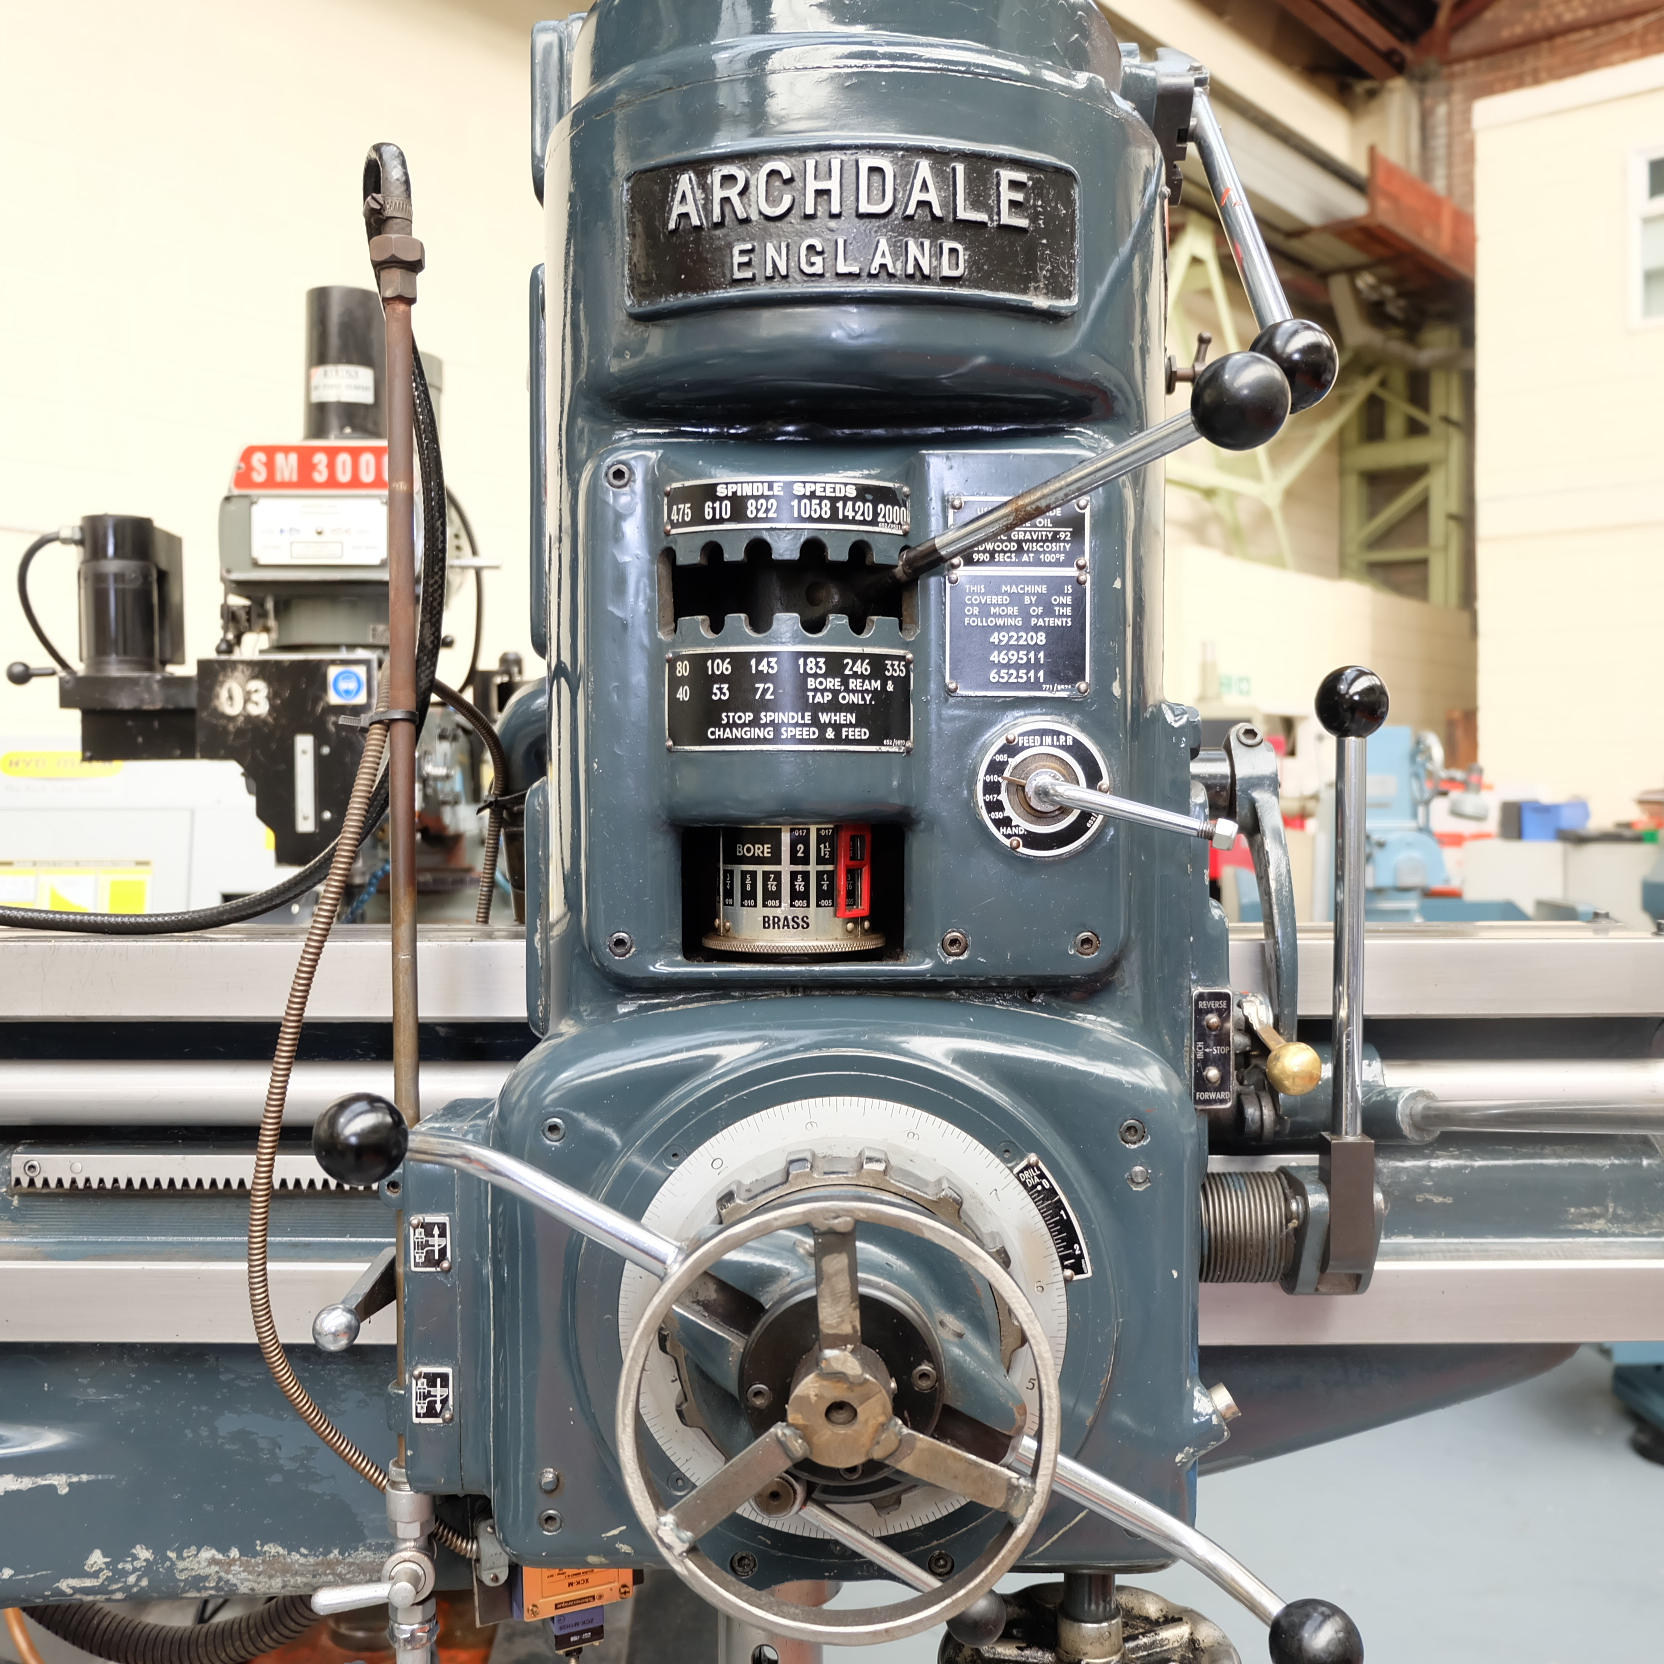 """Archdale: 3'6"""" Radial Arm Drill. Spindle Speeds 40-2000rpm. - Image 3 of 8"""